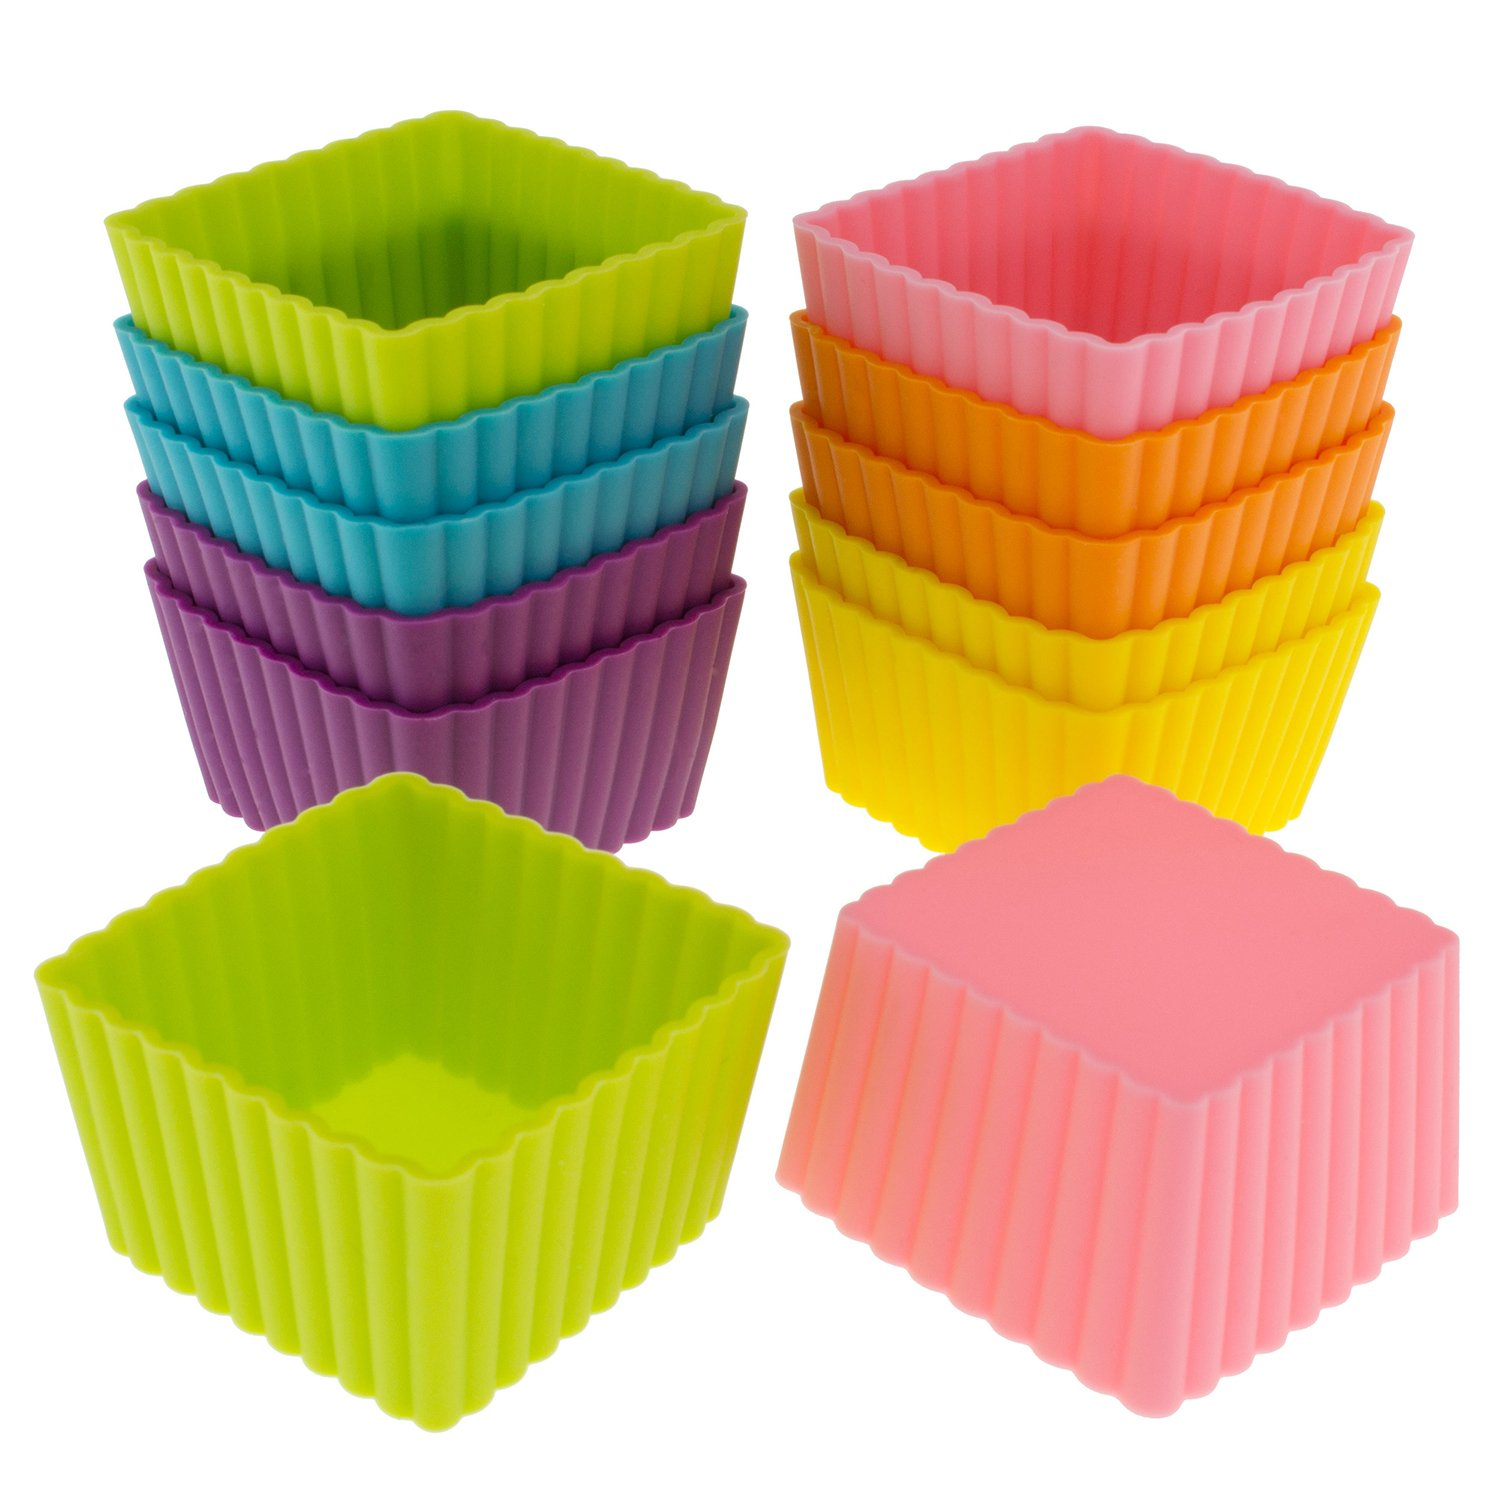 Freshware Silicone Cupcake Liners/Baking Cups - 12-Pack Muffin Molds, 1-6/8 inch Square, Six Vibrant Colors by Freshware